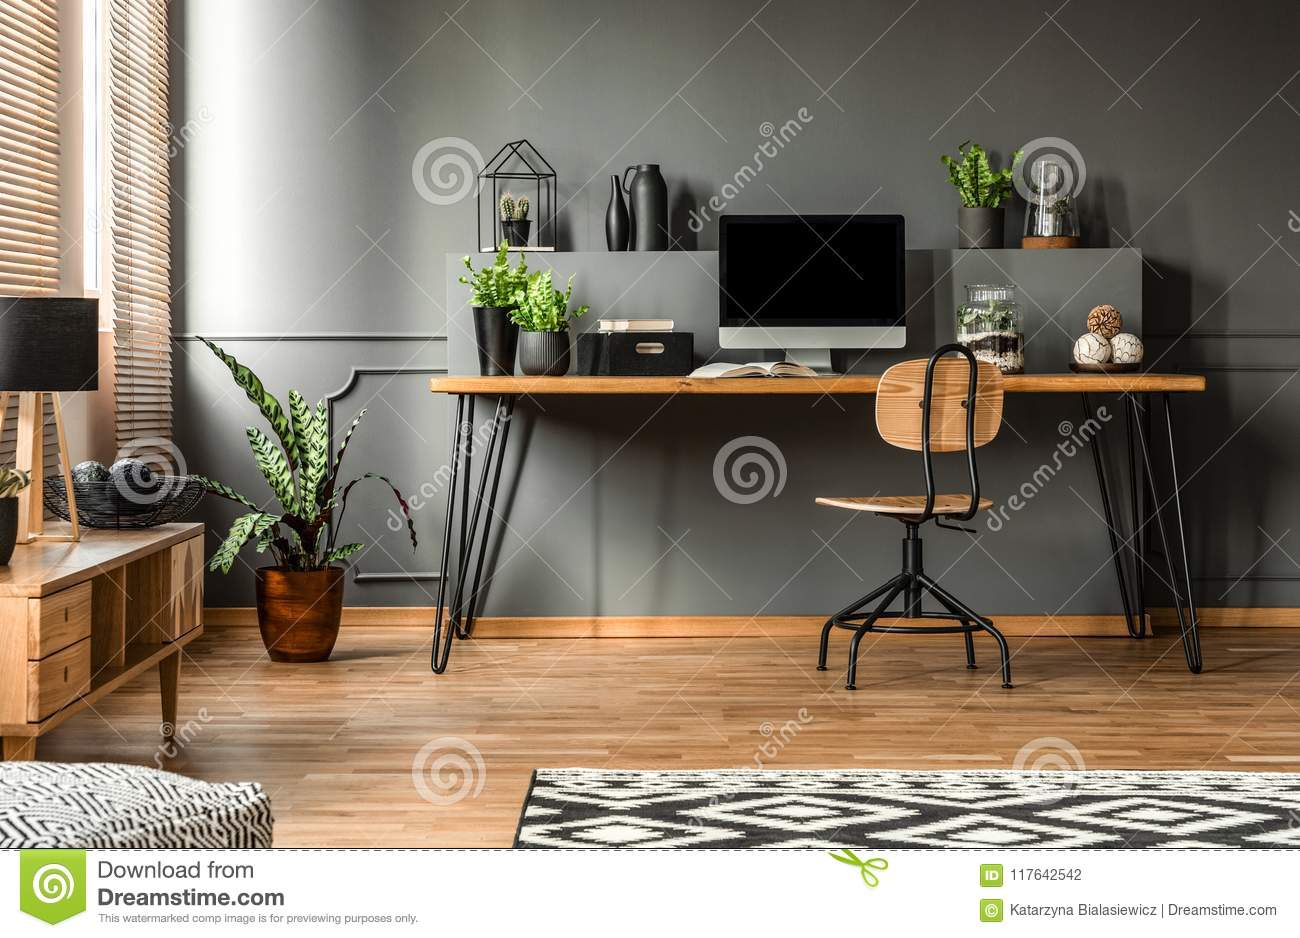 Real Photo Of A Dark Interior With Wooden Desk Chair And